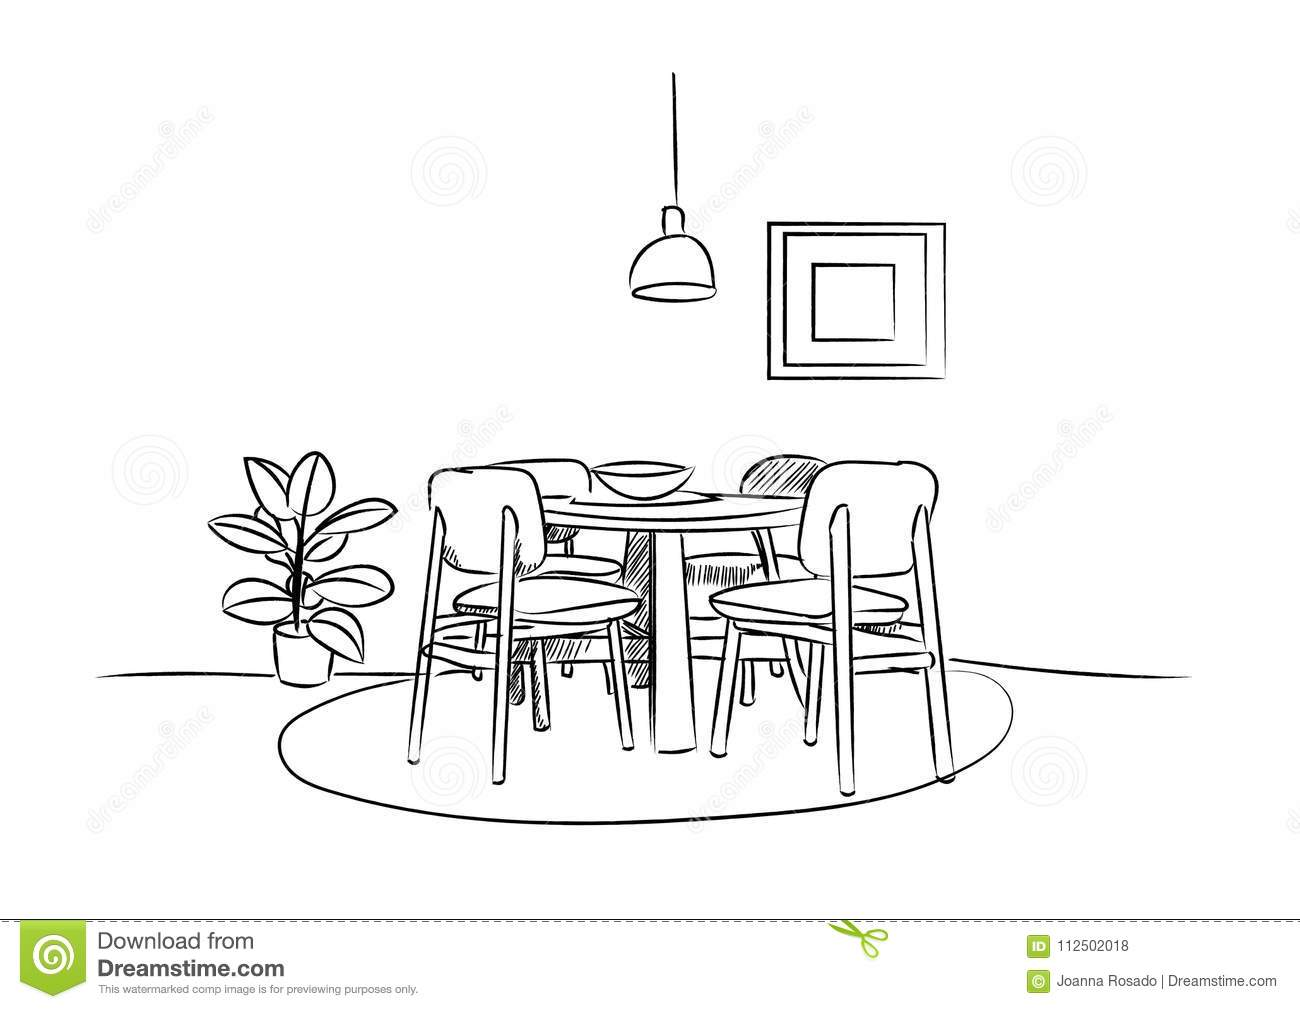 Dining Room Hand Drawn Sketch Interior Design Vector Illustration Stock Vector Illustration Of Floor Apartment 112502018